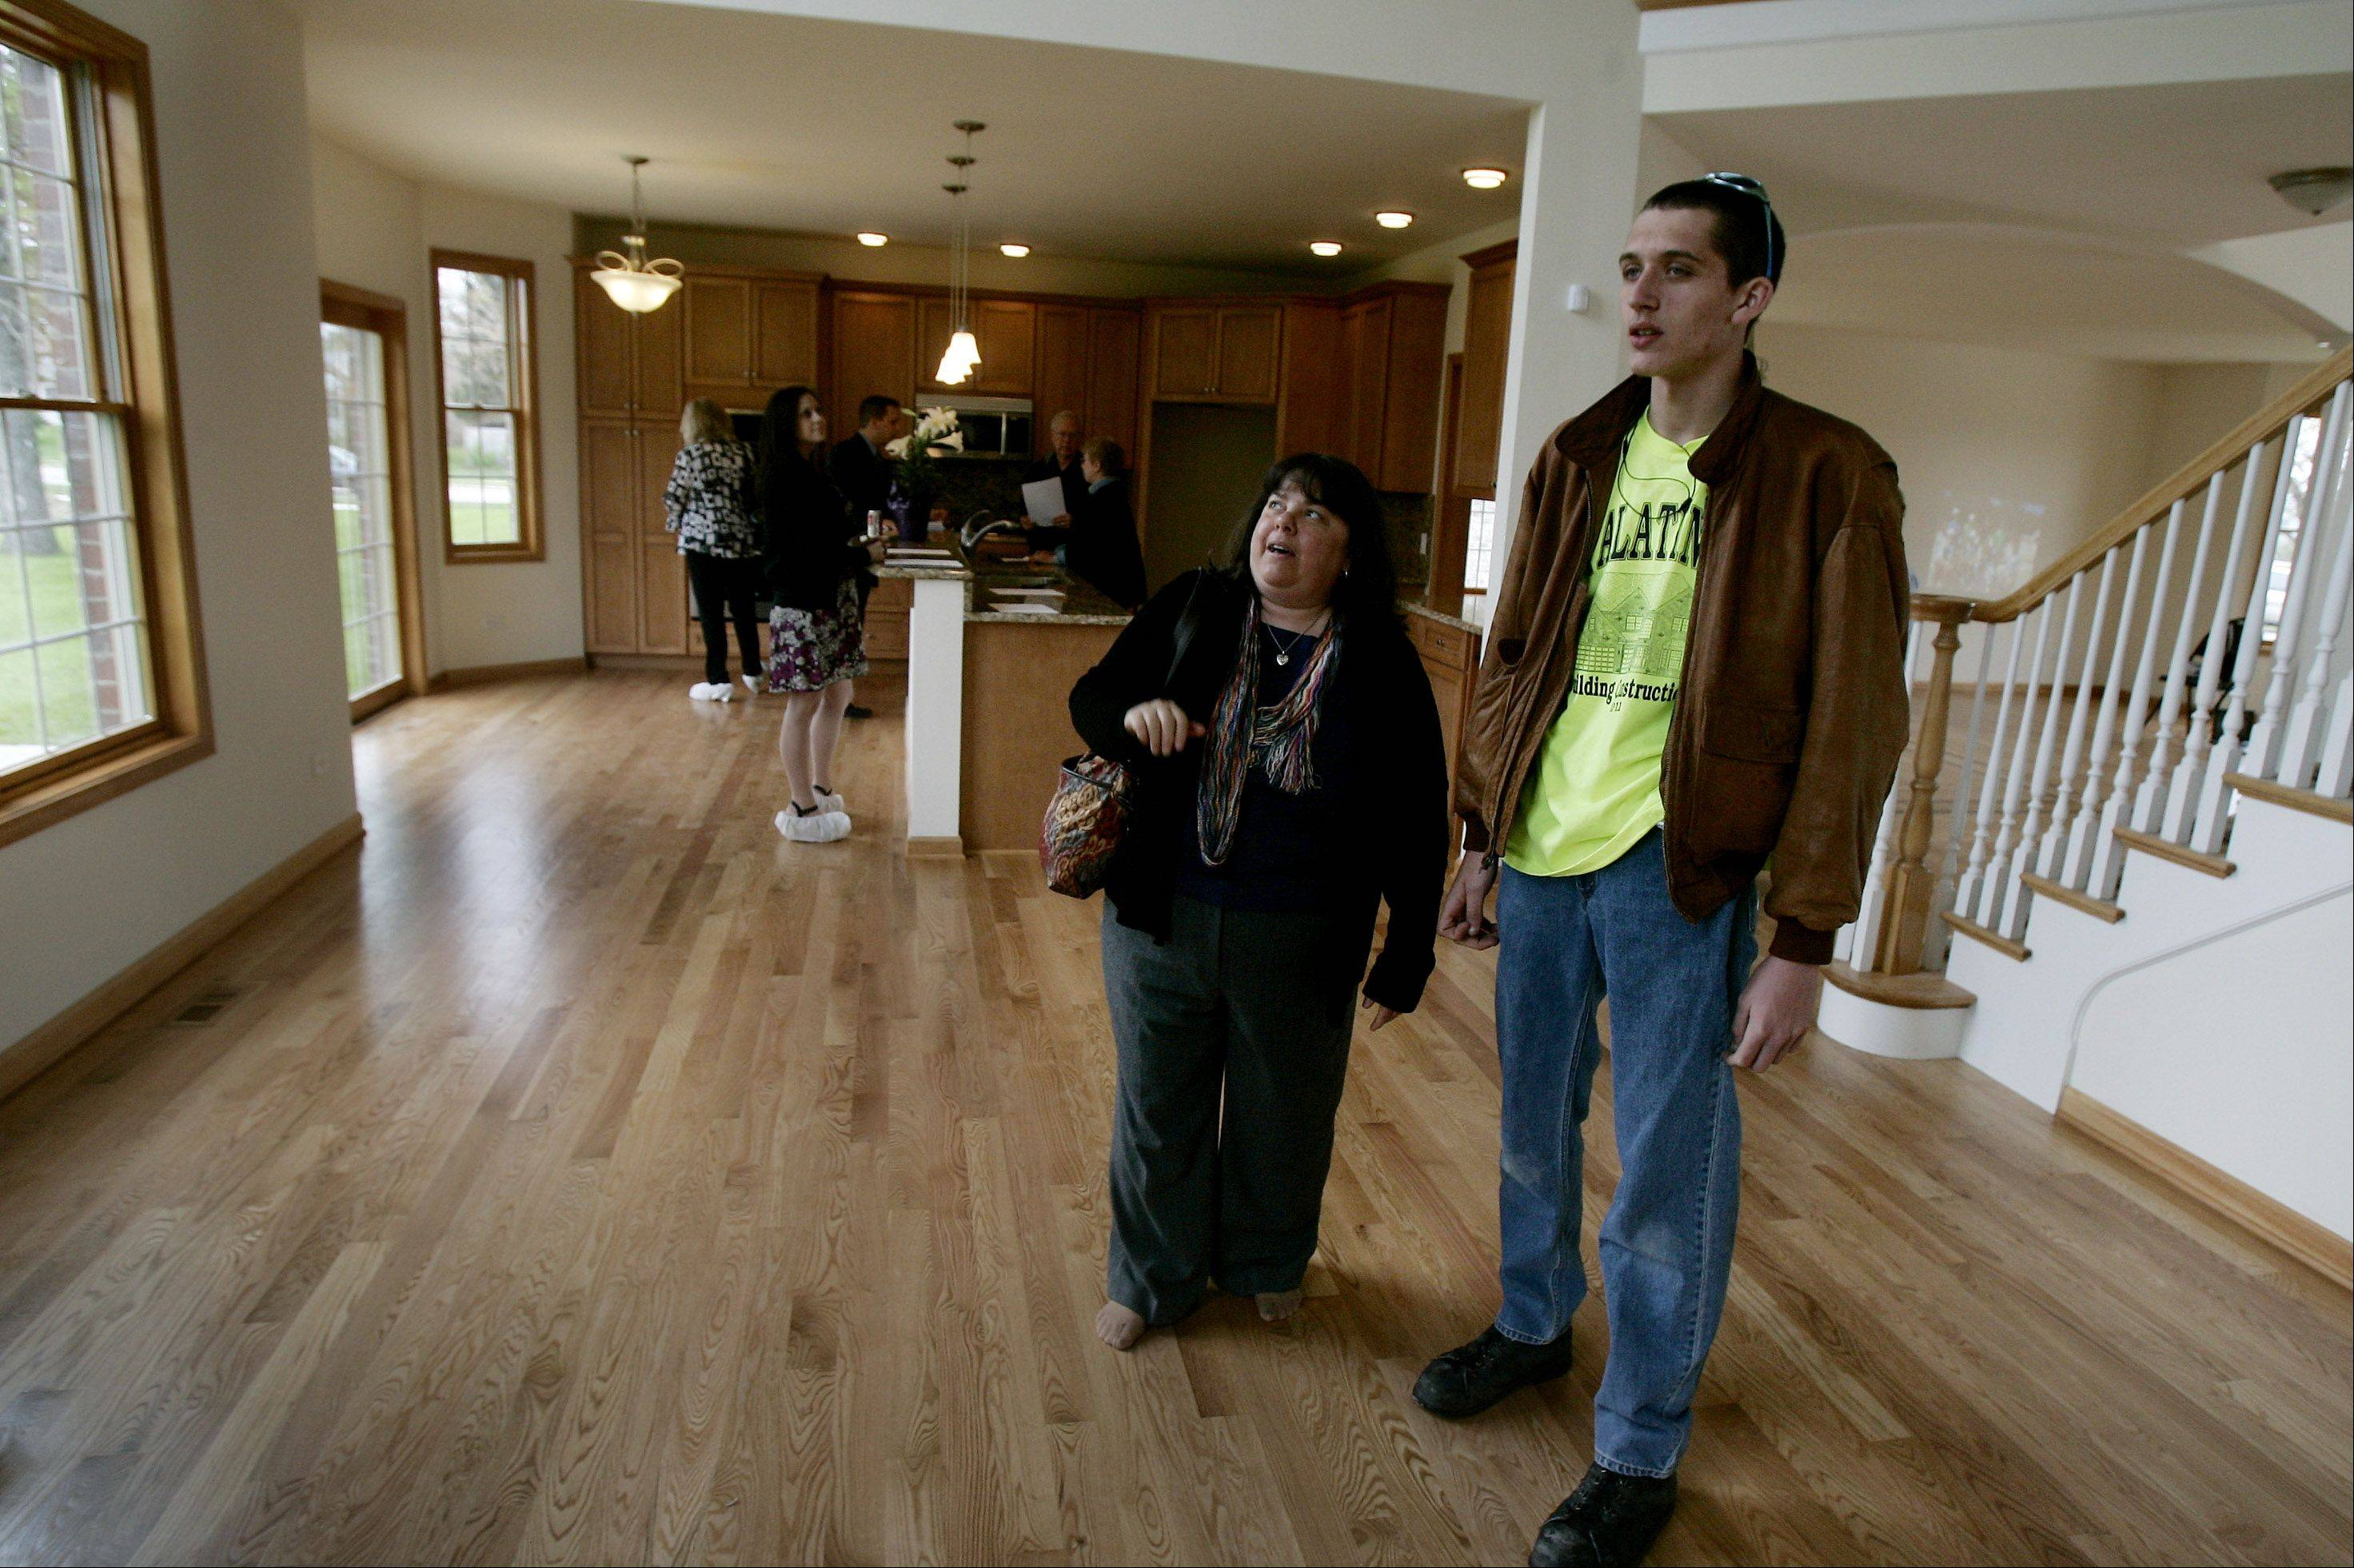 Mike Ramser, right, shows his mom, Laura, parts of a living room he helped build during last year's open house at a student-built home on Brockway Street in Palatine. The district will hold another open house this year for three new Palatine houses from 2 to 4 p.m. on Sunday, May 19.